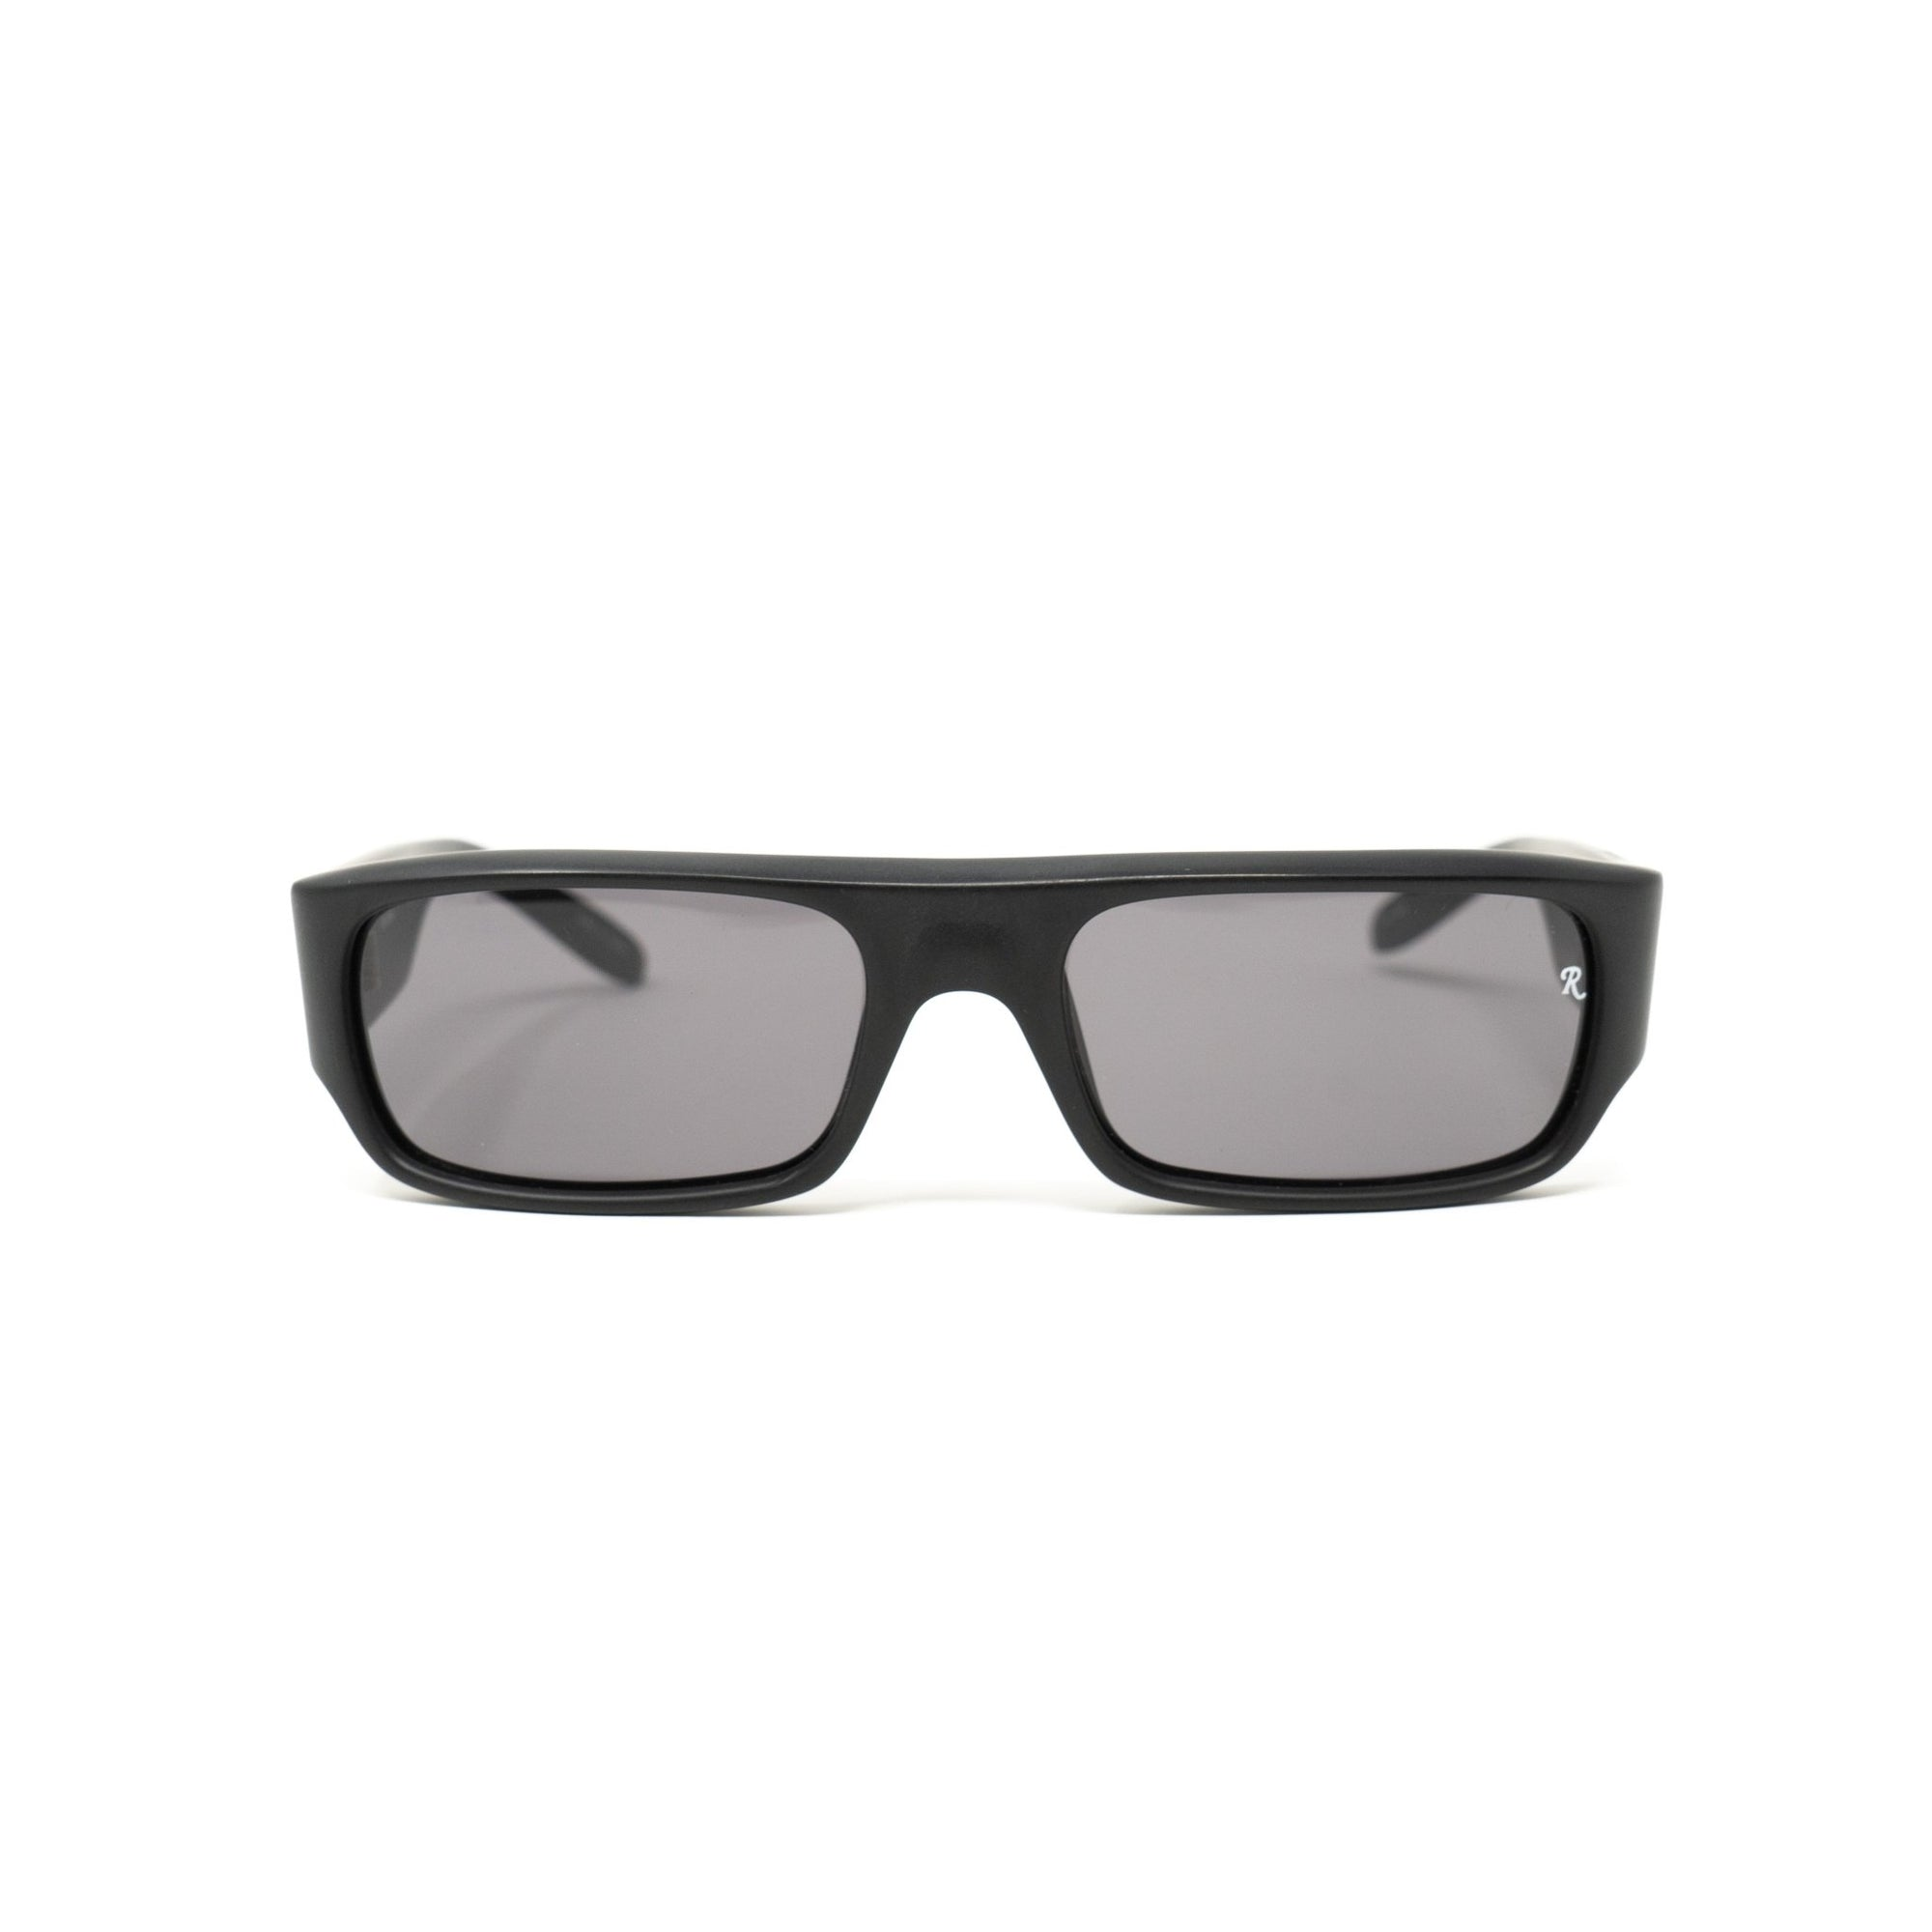 Raf Simons Sunglasses Flat Top Matte Black and Grey Lenses - 9RAF9C1MATTBLACK - Watches & Crystals